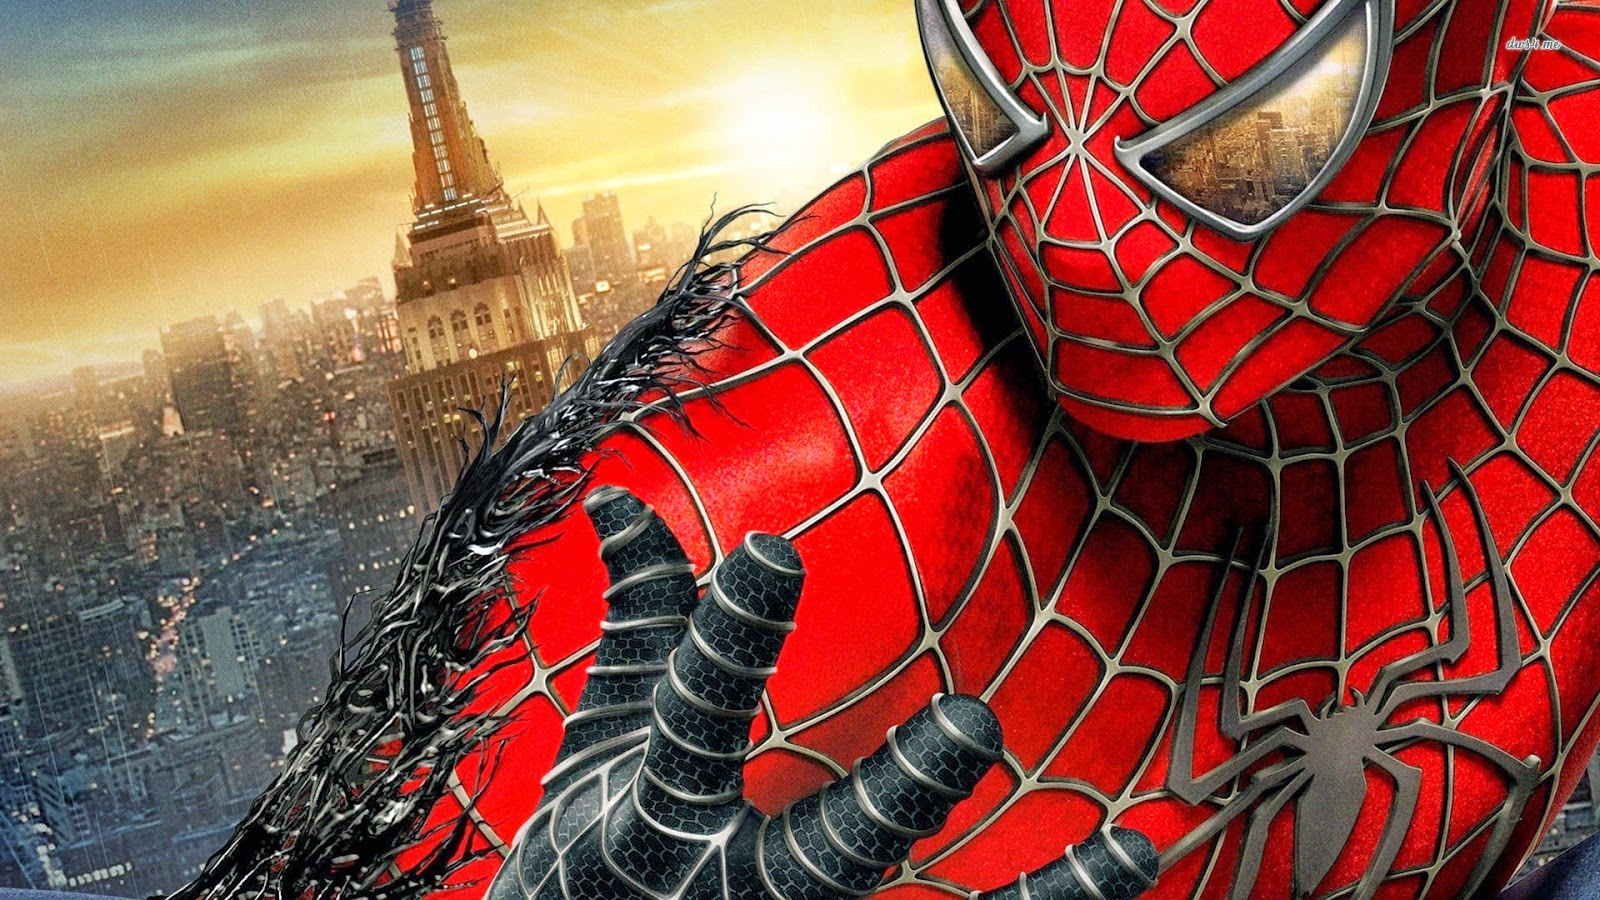 Spider Man Hd Wallpapers Download Pc Spiderman Black